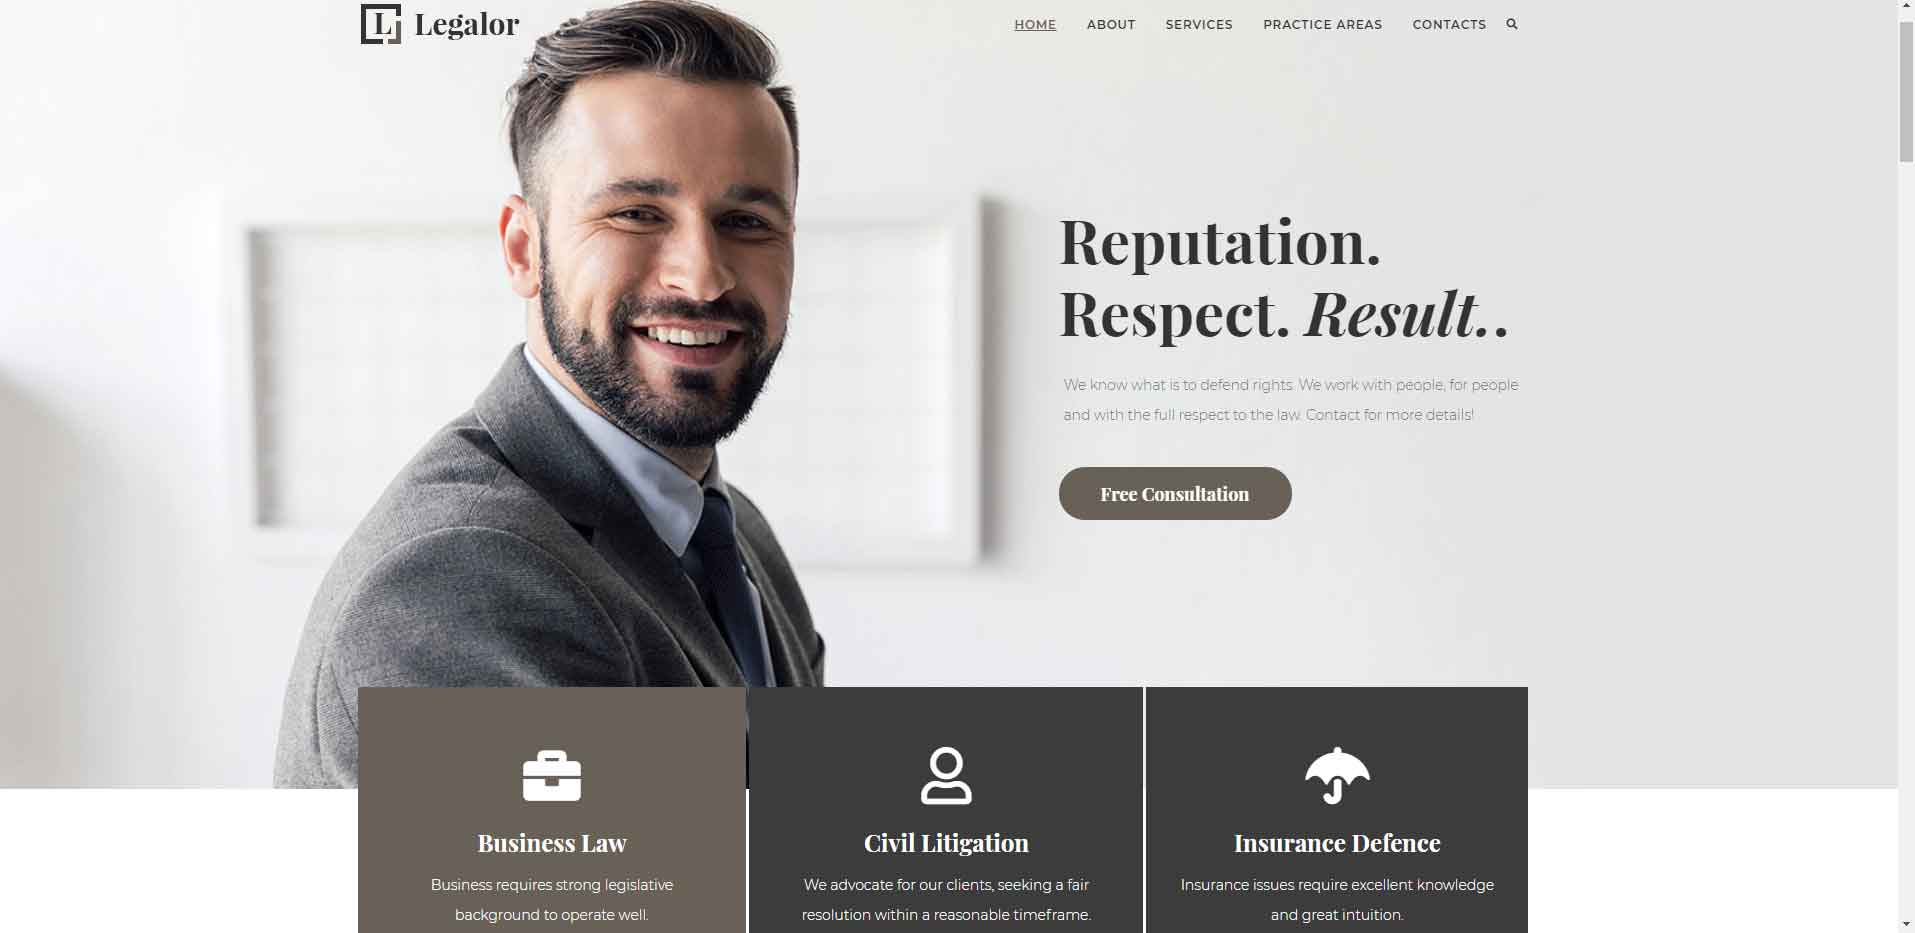 image of attorney website showing a man and call to action text